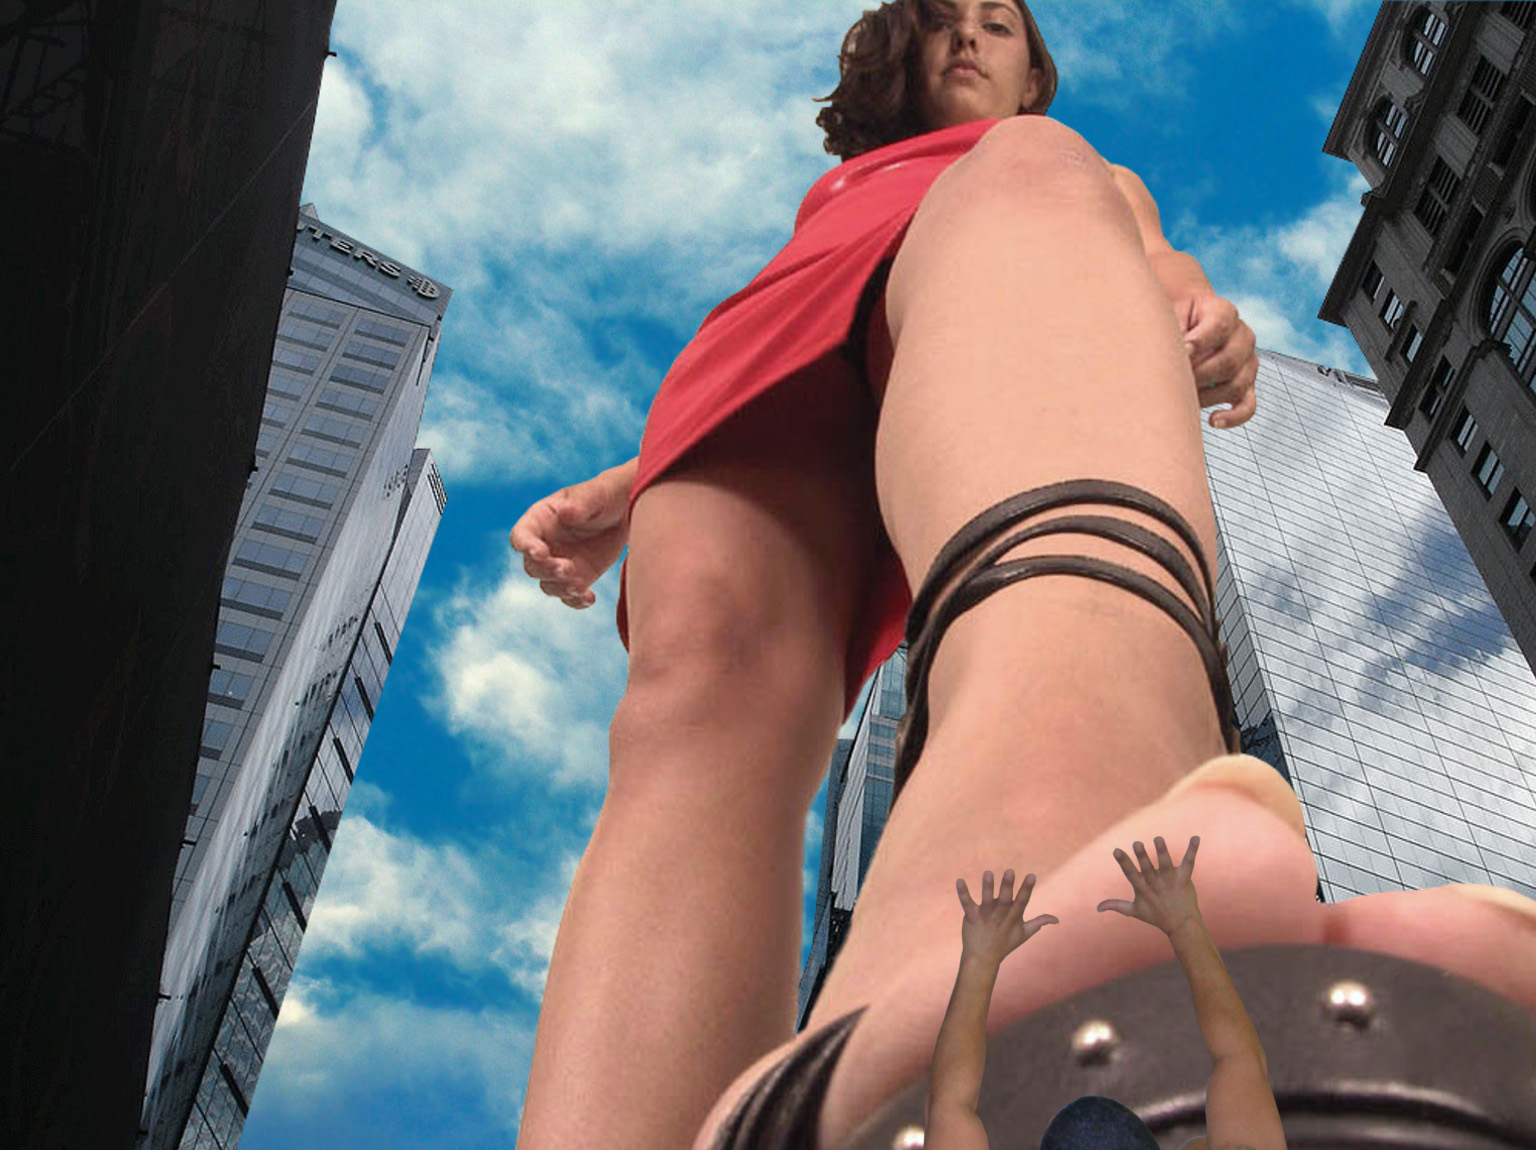 155522 - clouds giantess imminent_crush looking_at_victim looking_down point_of_view sky skyscrapers small_man underfoot upward_angle